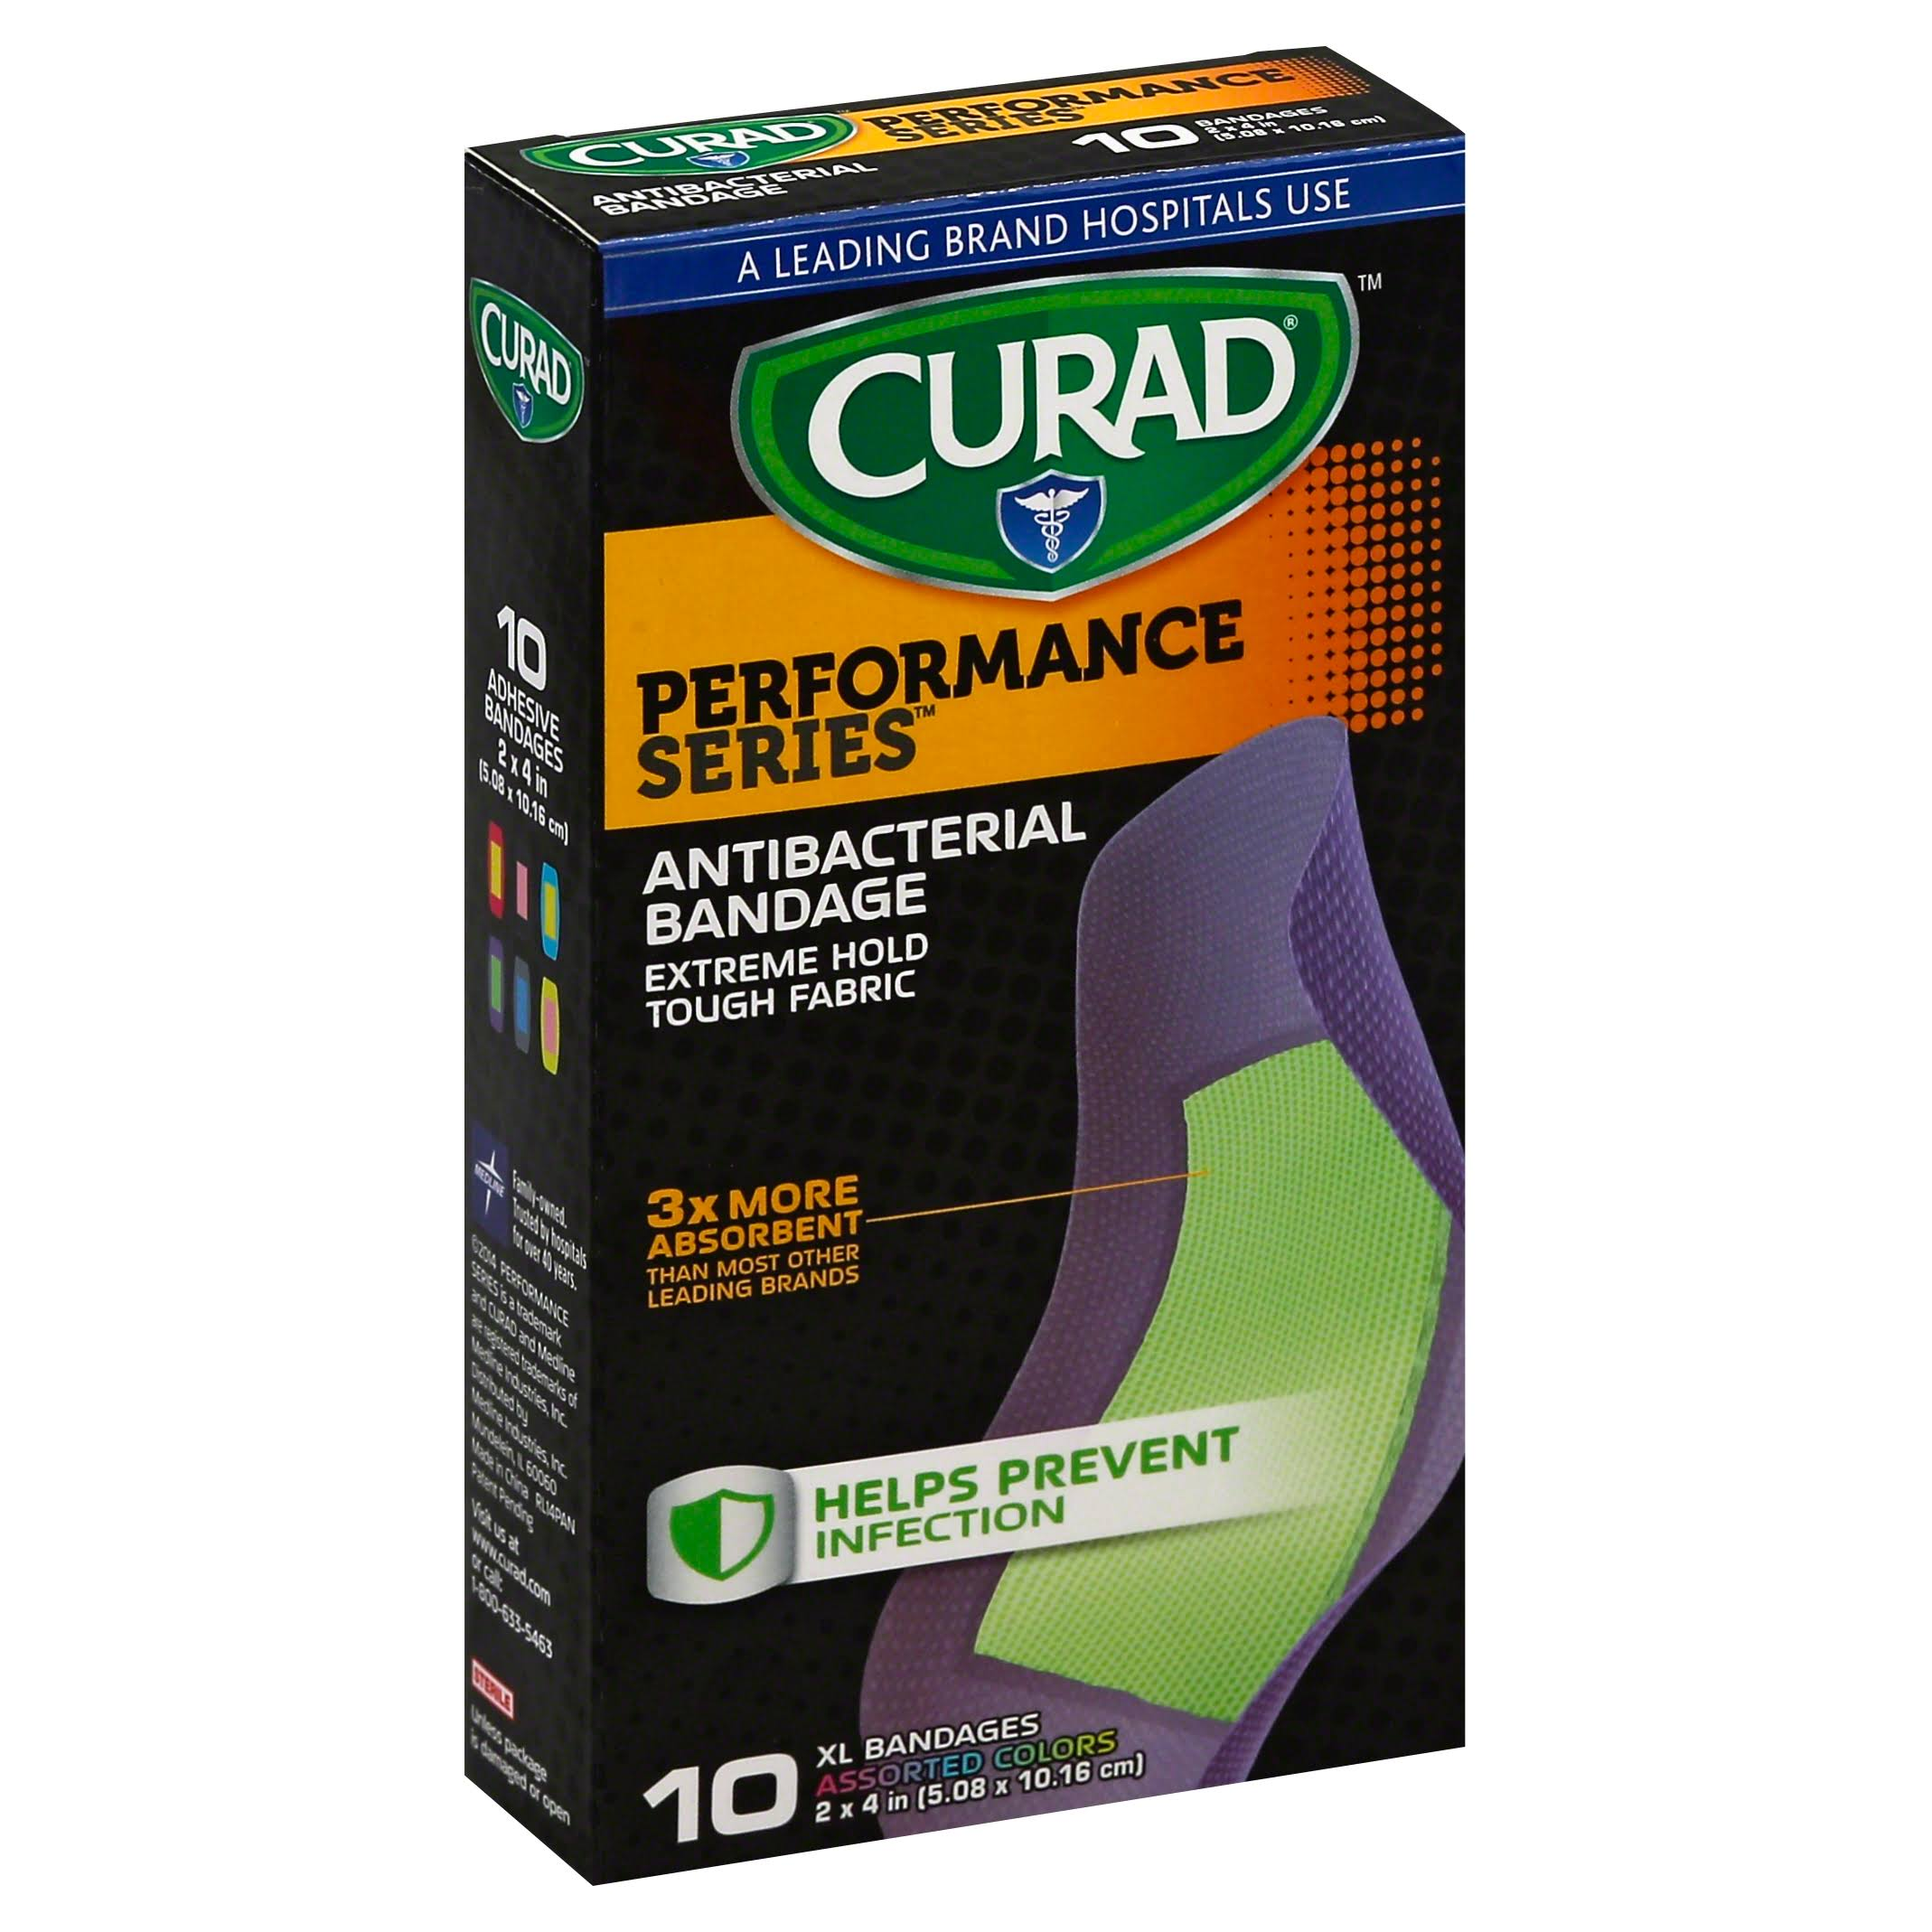 Curad Performance Series XL Bandages - 10pcs